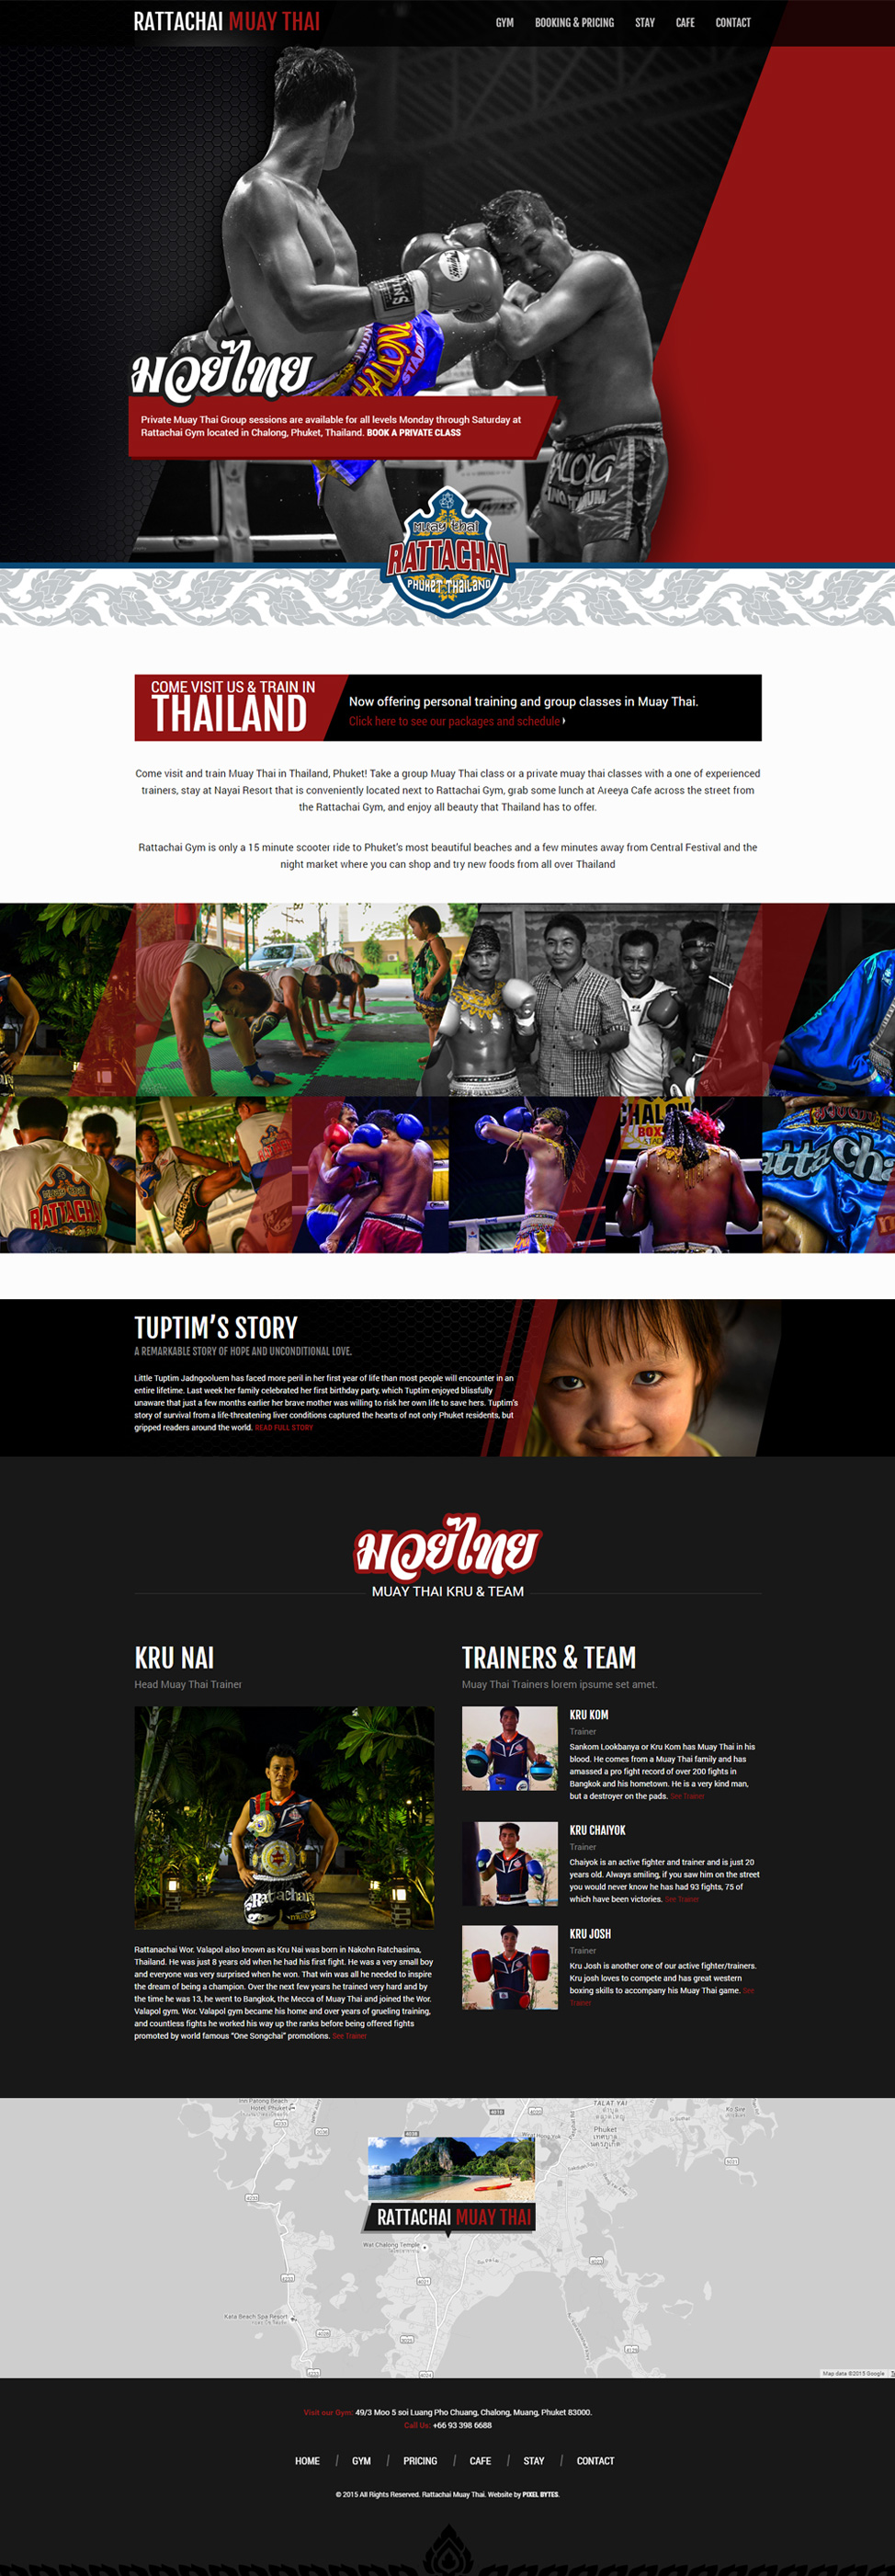 Thailand Website Design - Rattachai Muay Thai